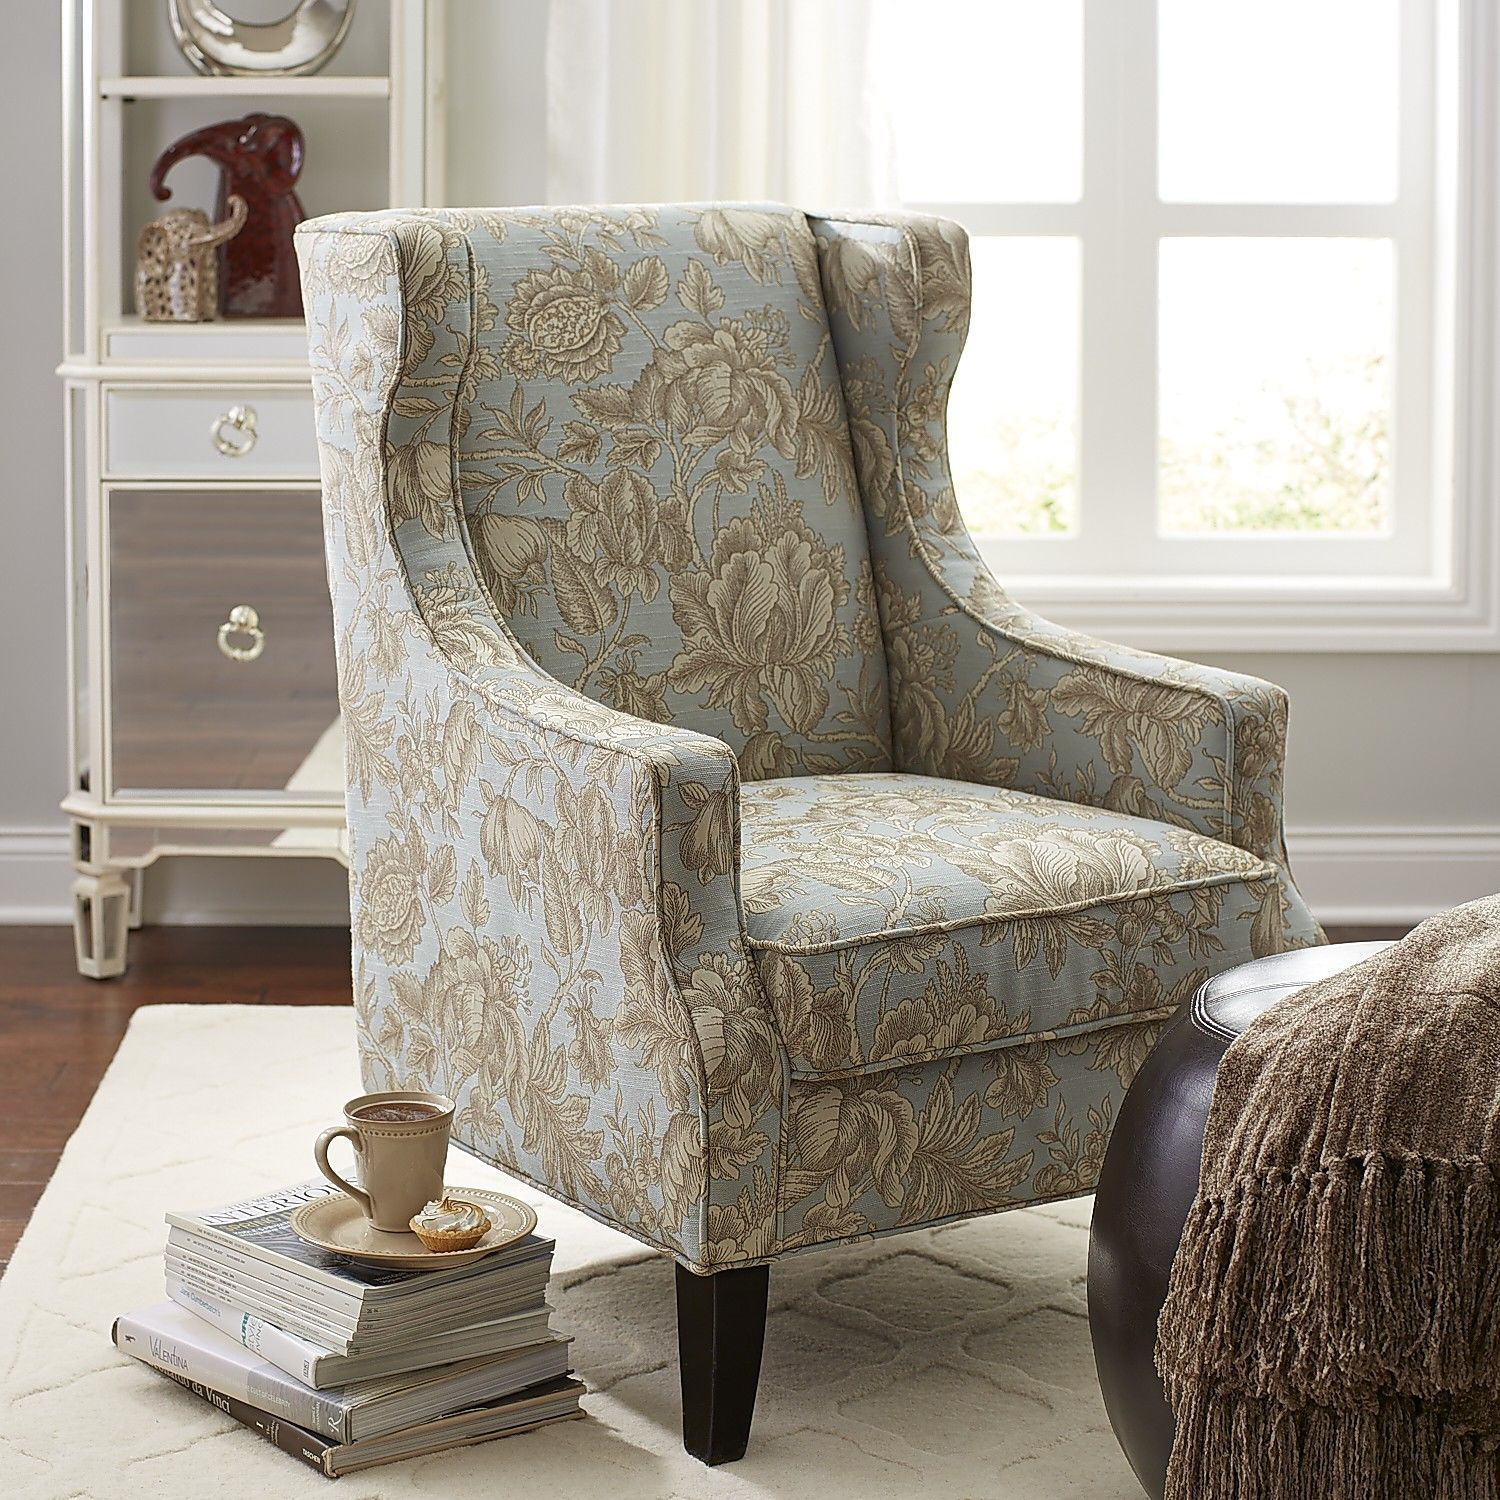 So excited for my new living room chairs Alec Wing Chair